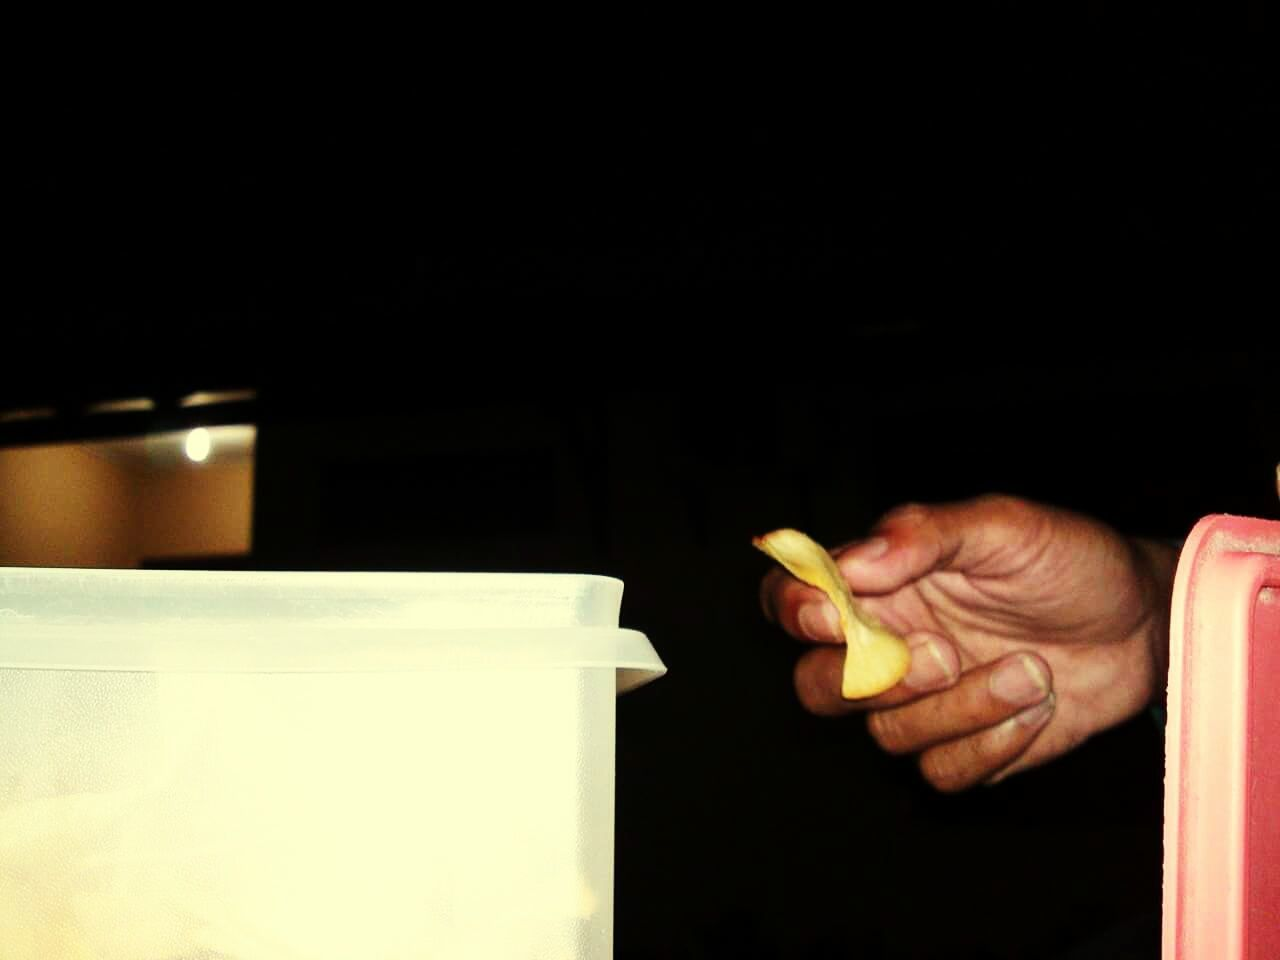 human hand, human finger, human body part, real people, indoors, one person, black background, food, close-up, people